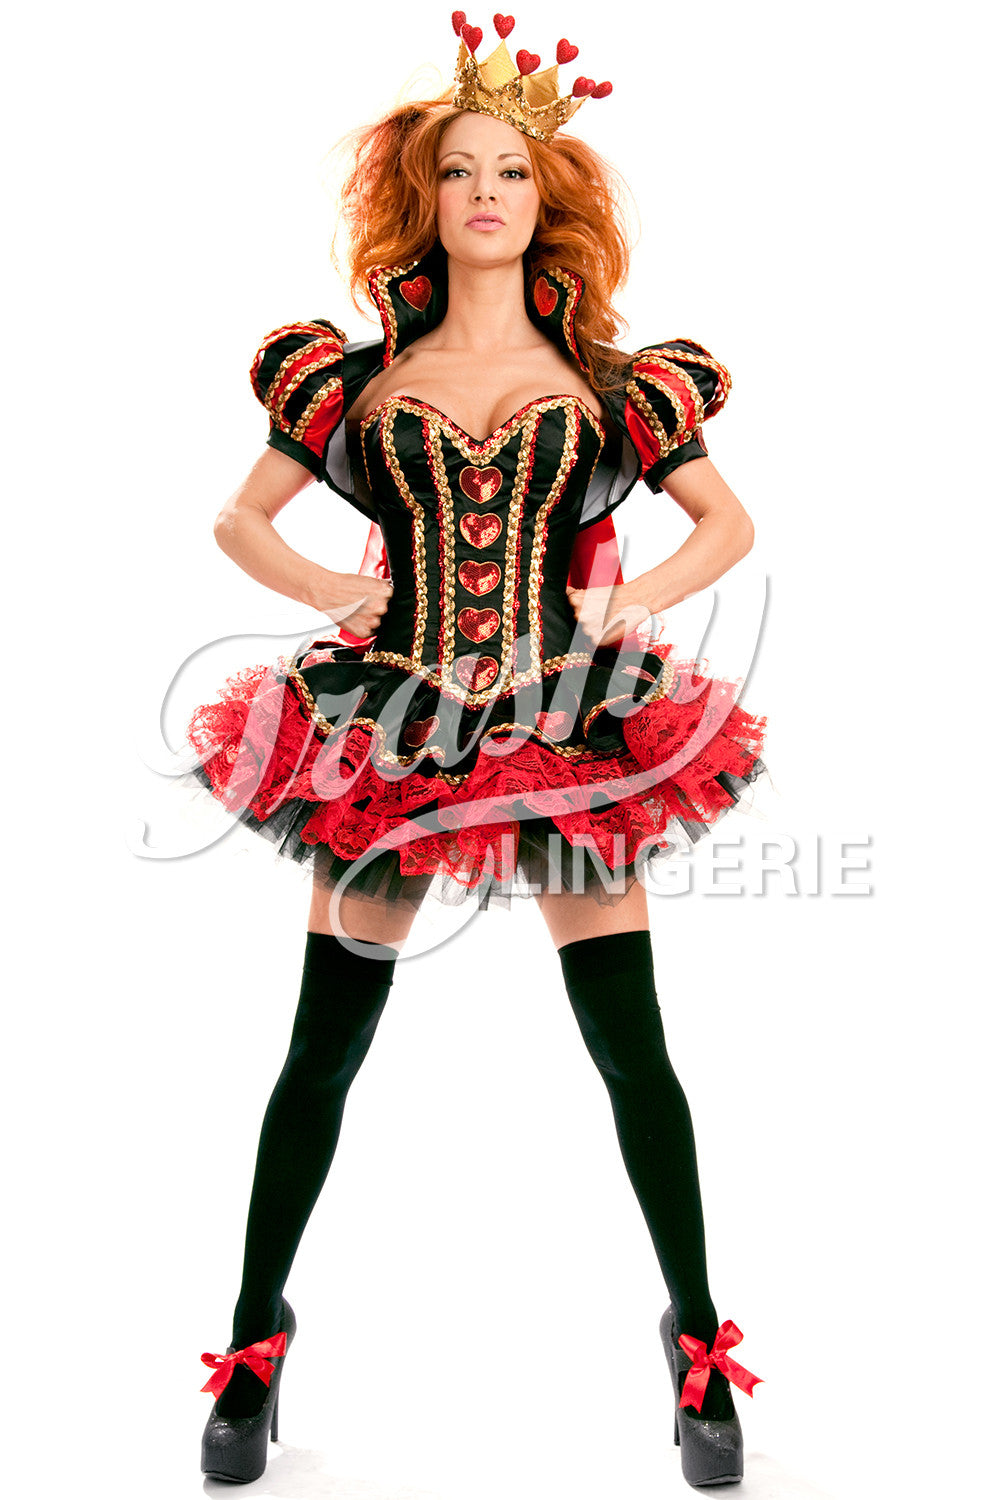 Queen of Hearts Bolero